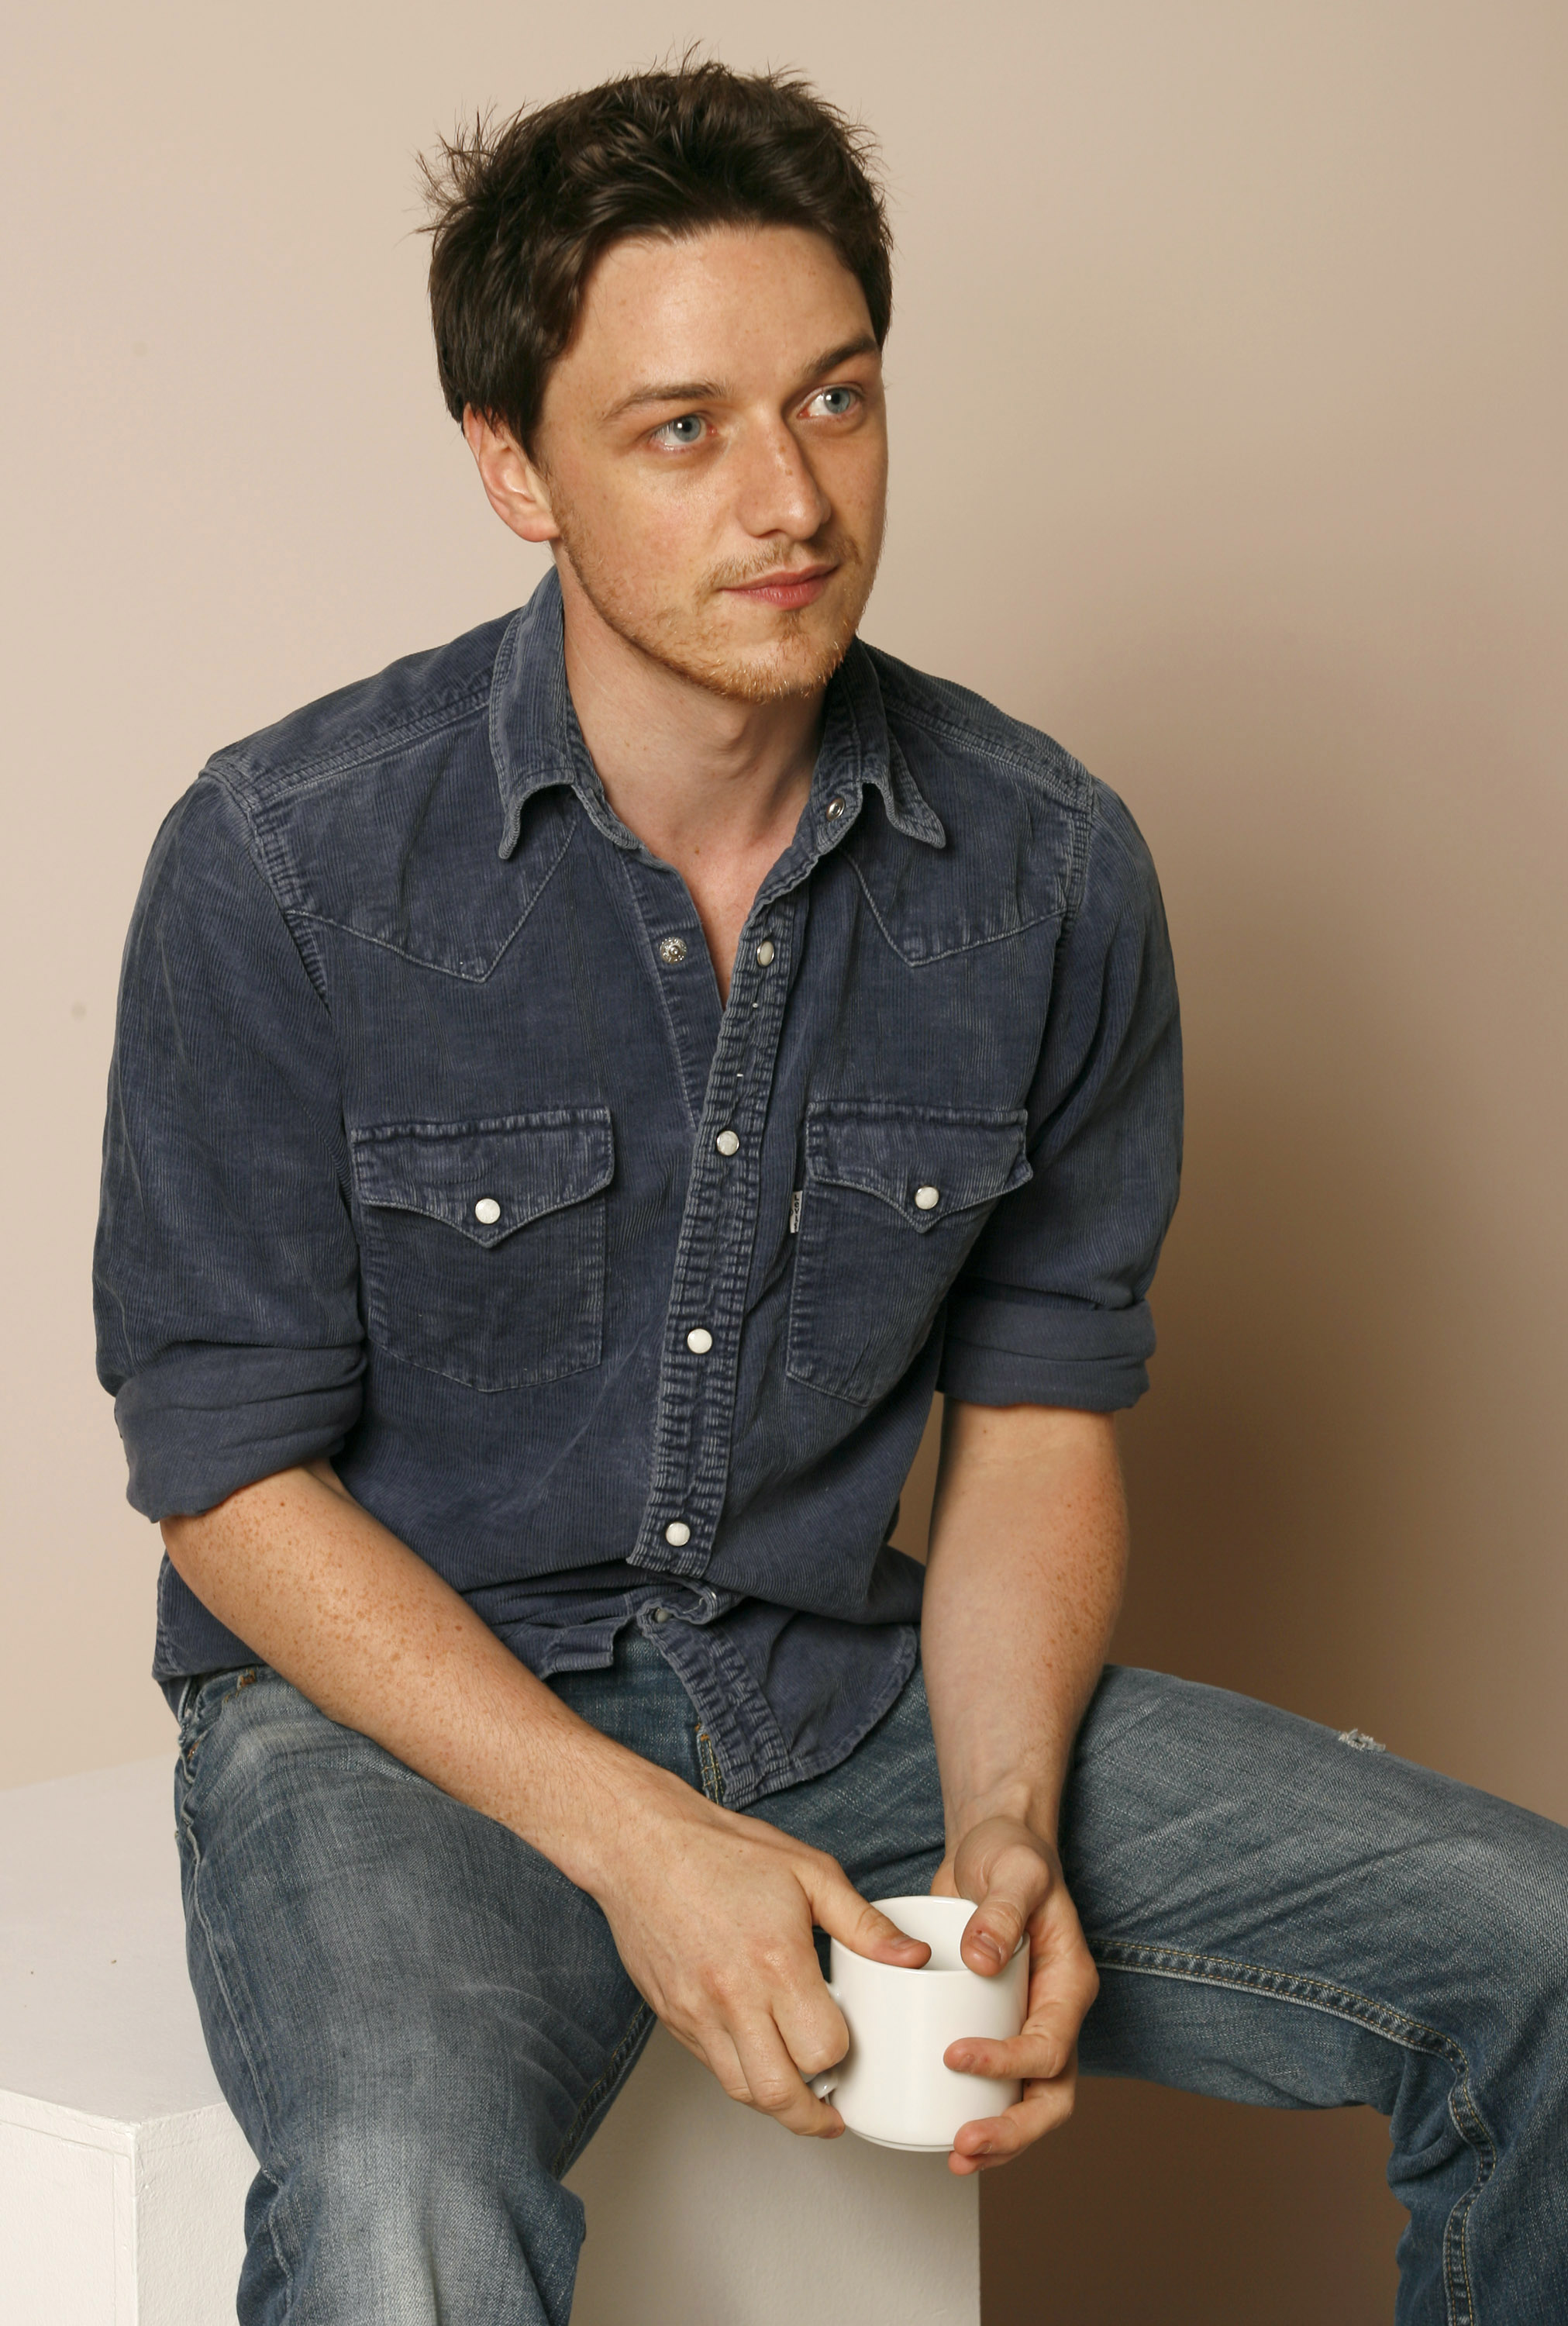 Amazing James McAvoy Pictures & Backgrounds